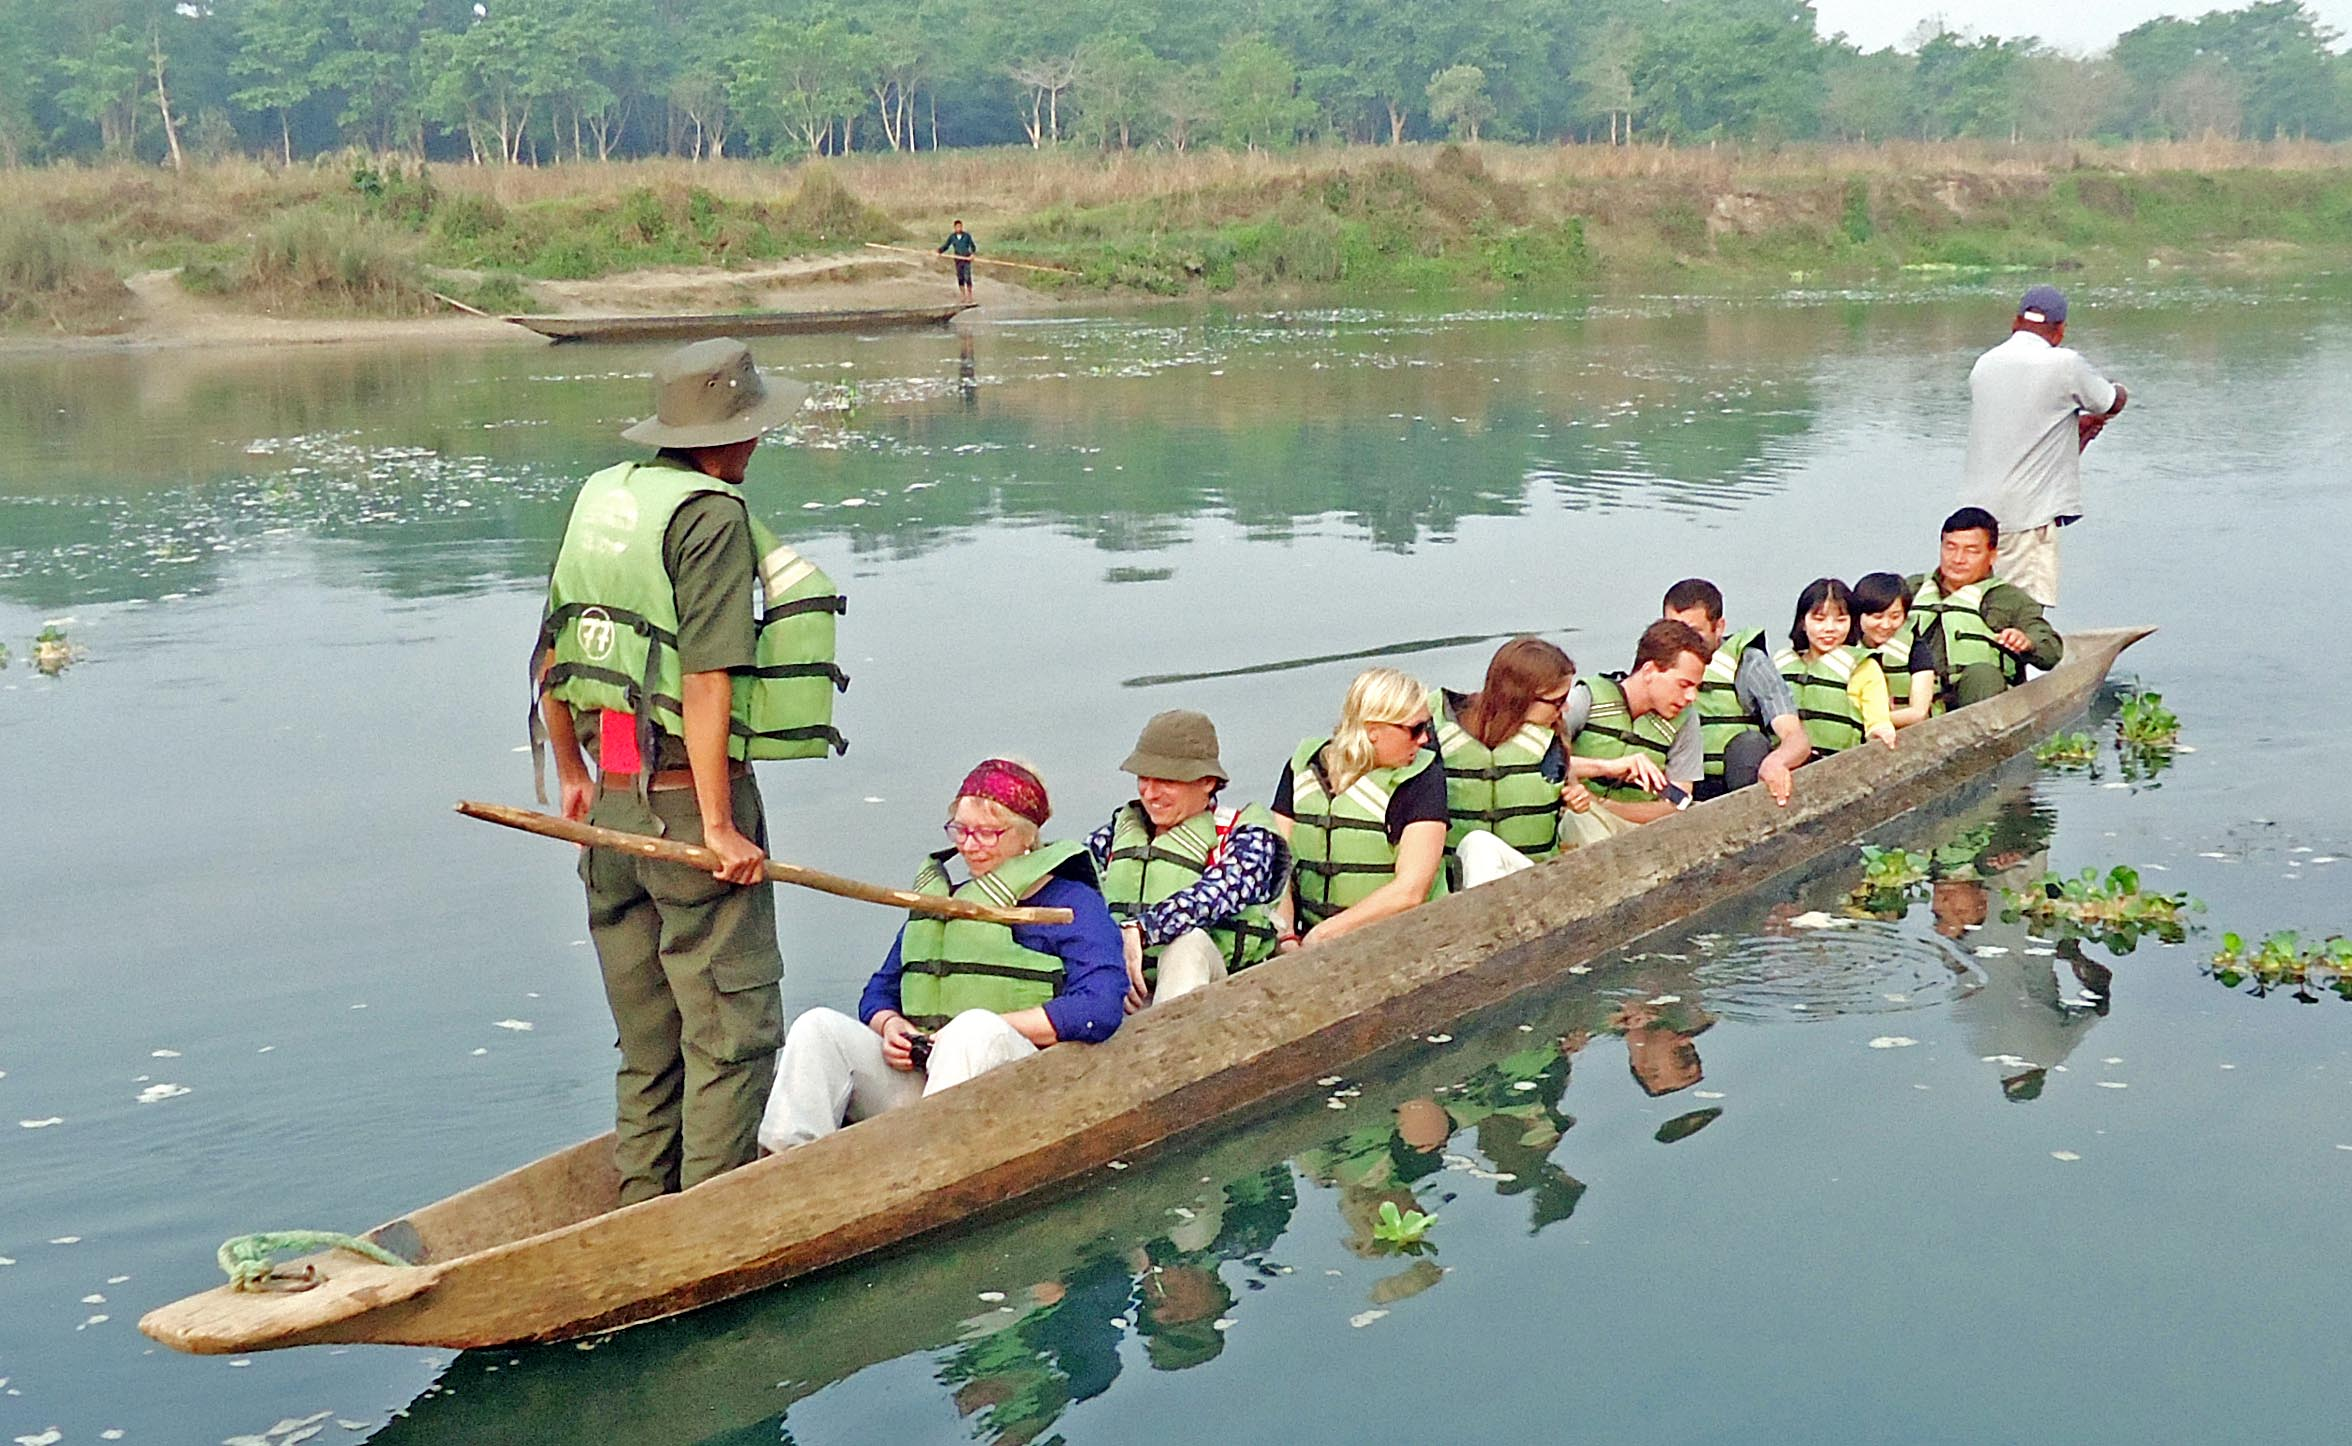 Tourists enjoy boating in Rapti River at Sauraha in the Chitwan National Park in Chitwan district, on Sunday, April 2, 2017. Photo: Rishi Ram Baral